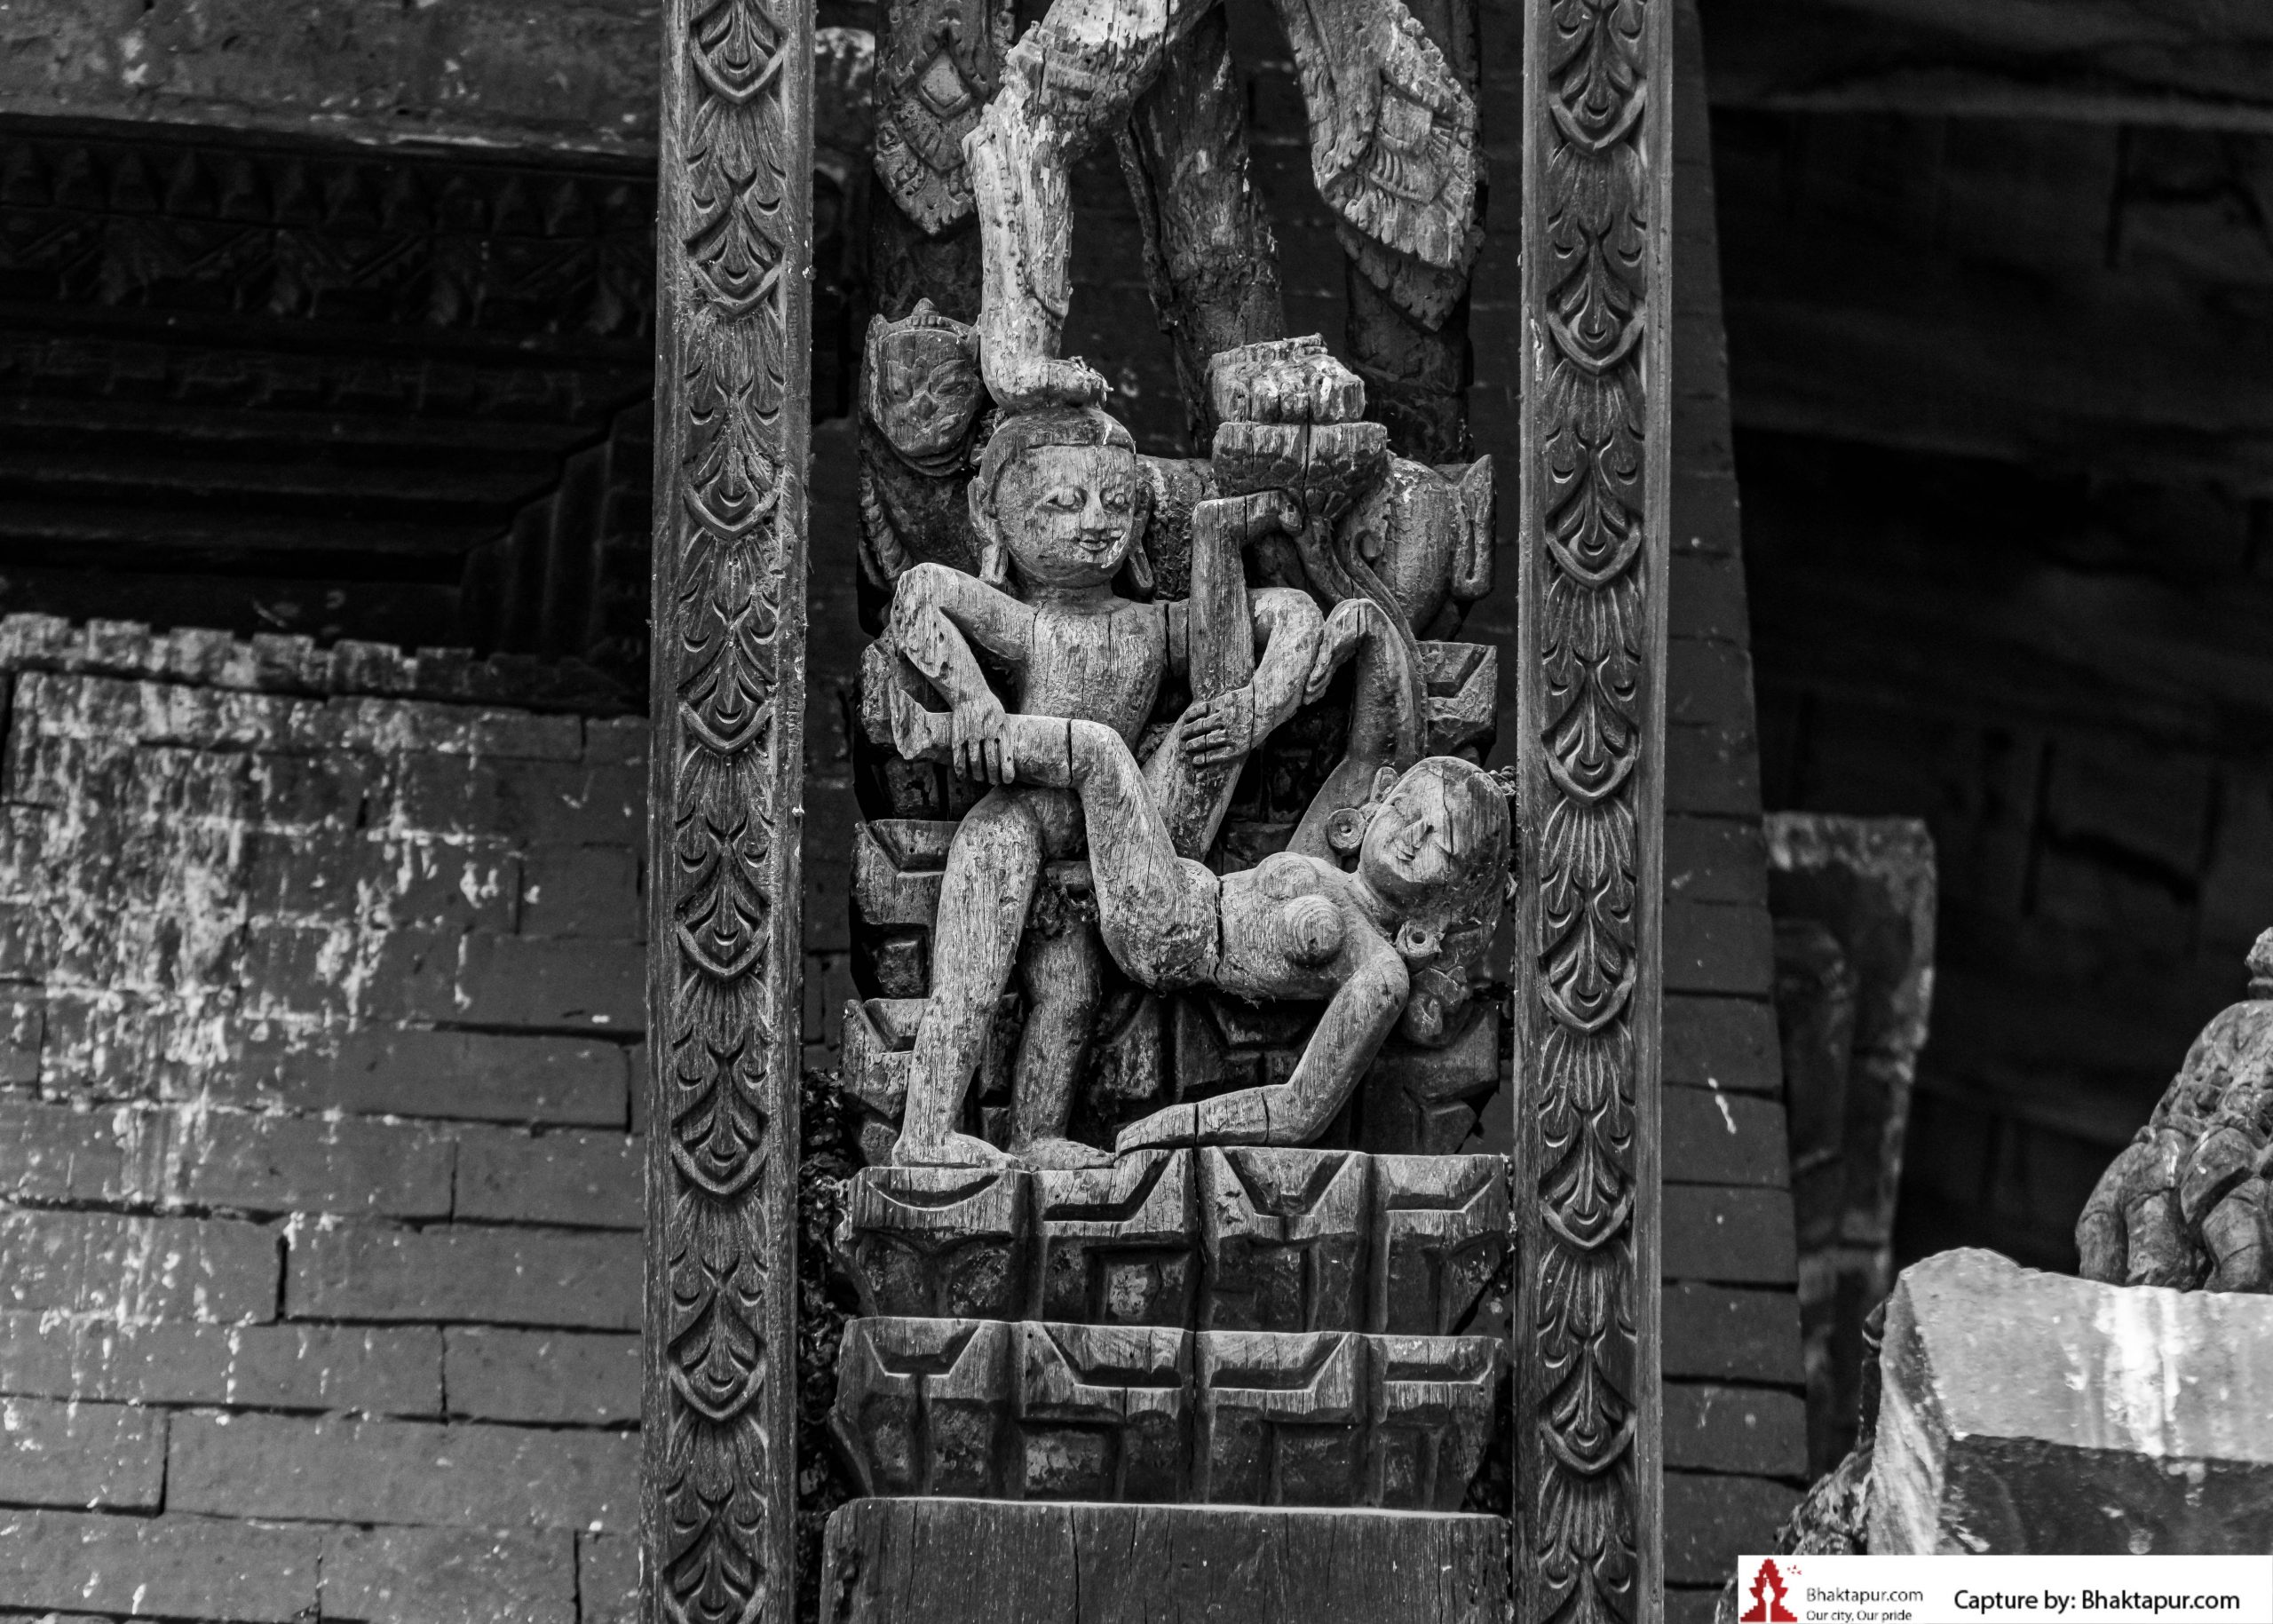 https://www.bhaktapur.com/wp-content/uploads/2021/08/erotic-carving-92-of-137-scaled.jpg